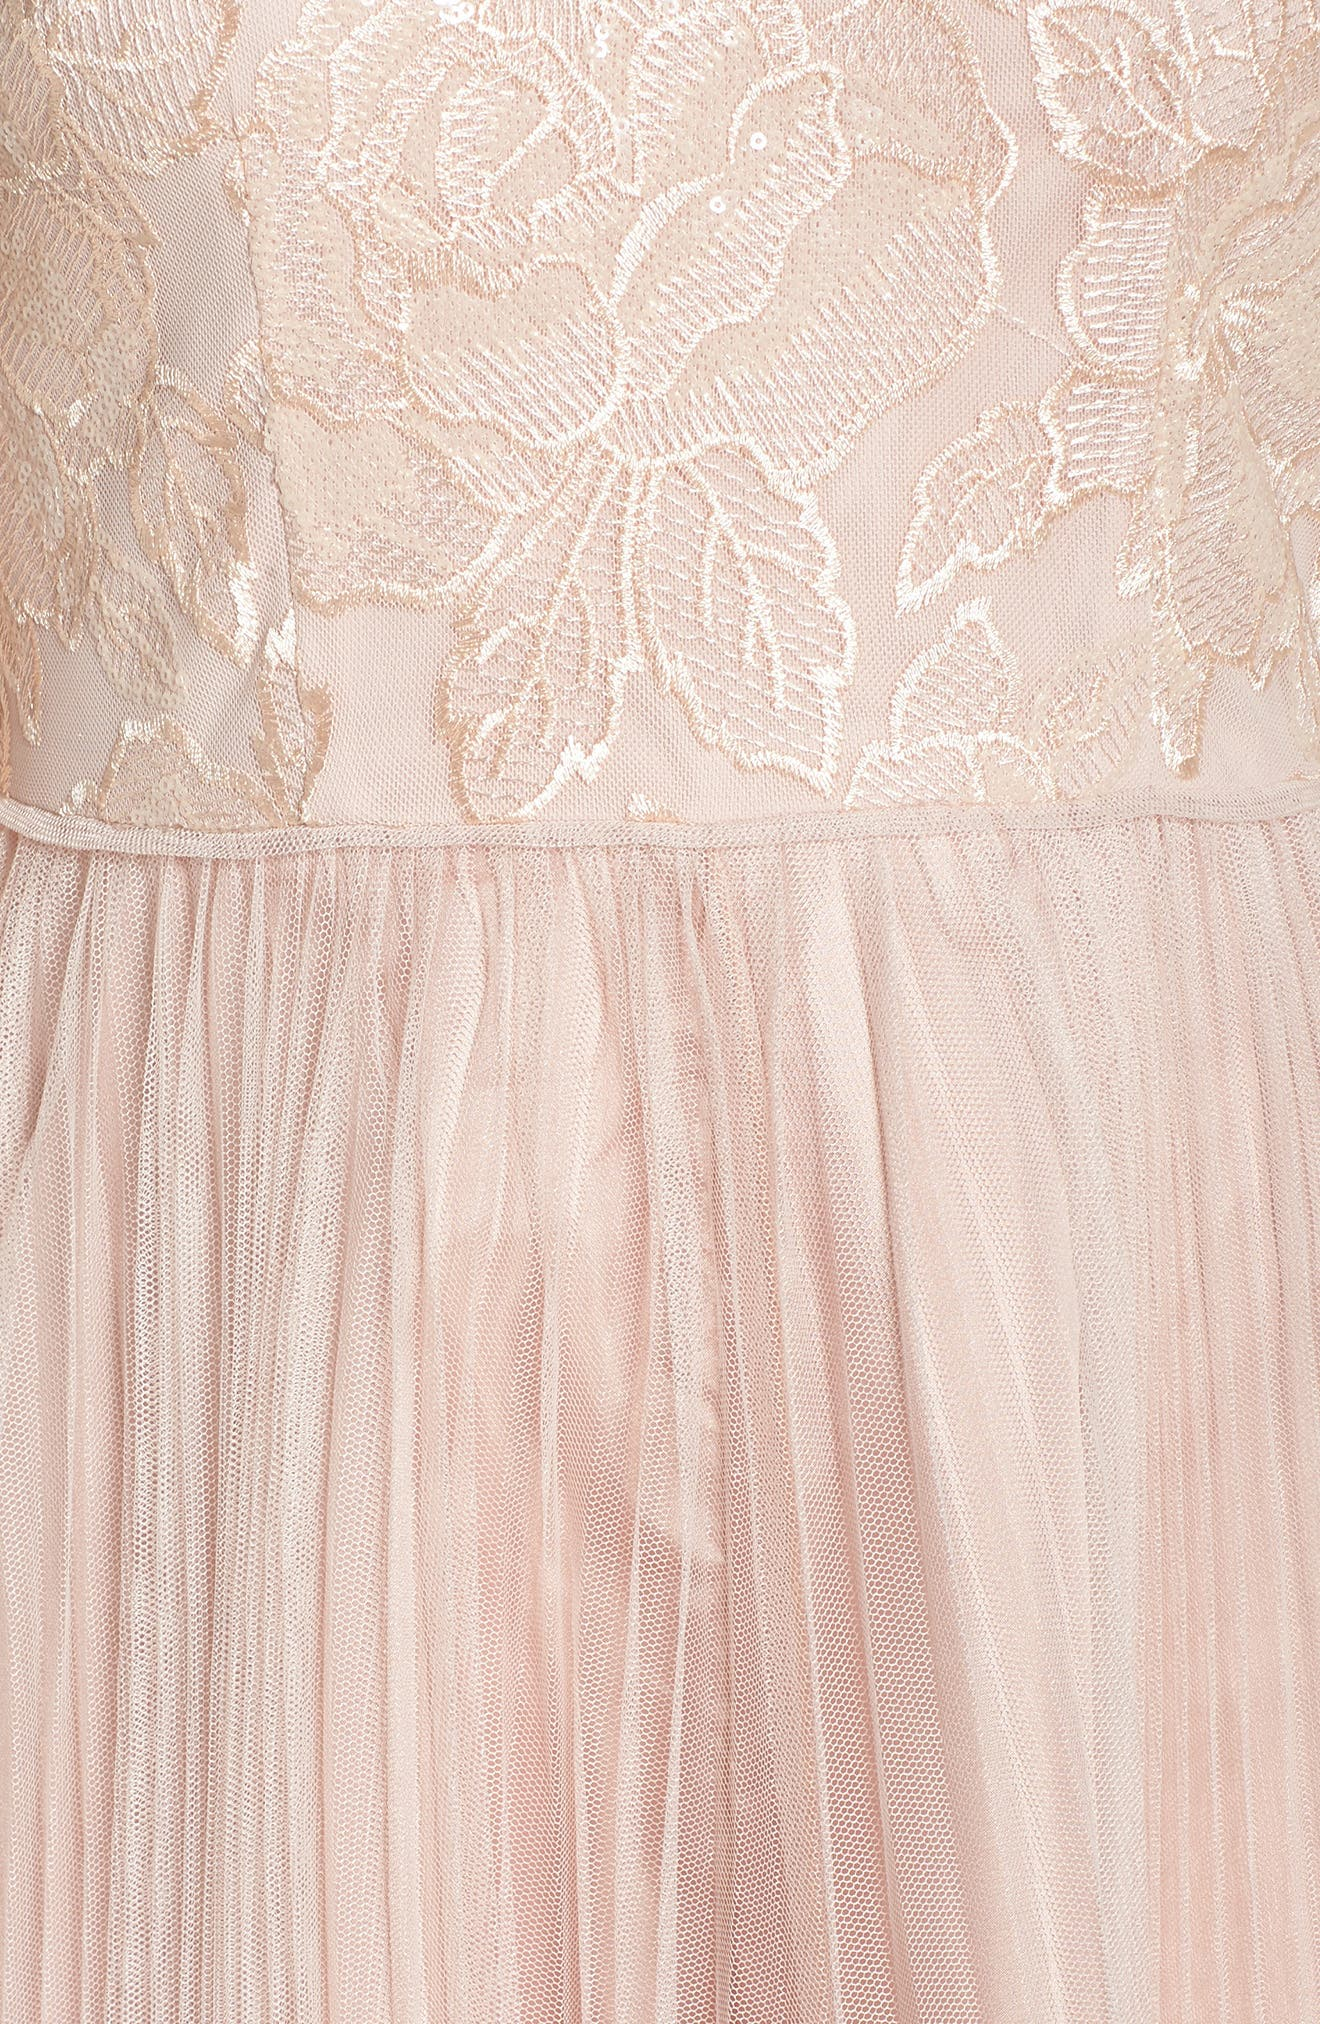 Sequin Pleated Tulle High/Low Gown,                             Alternate thumbnail 5, color,                             Blush